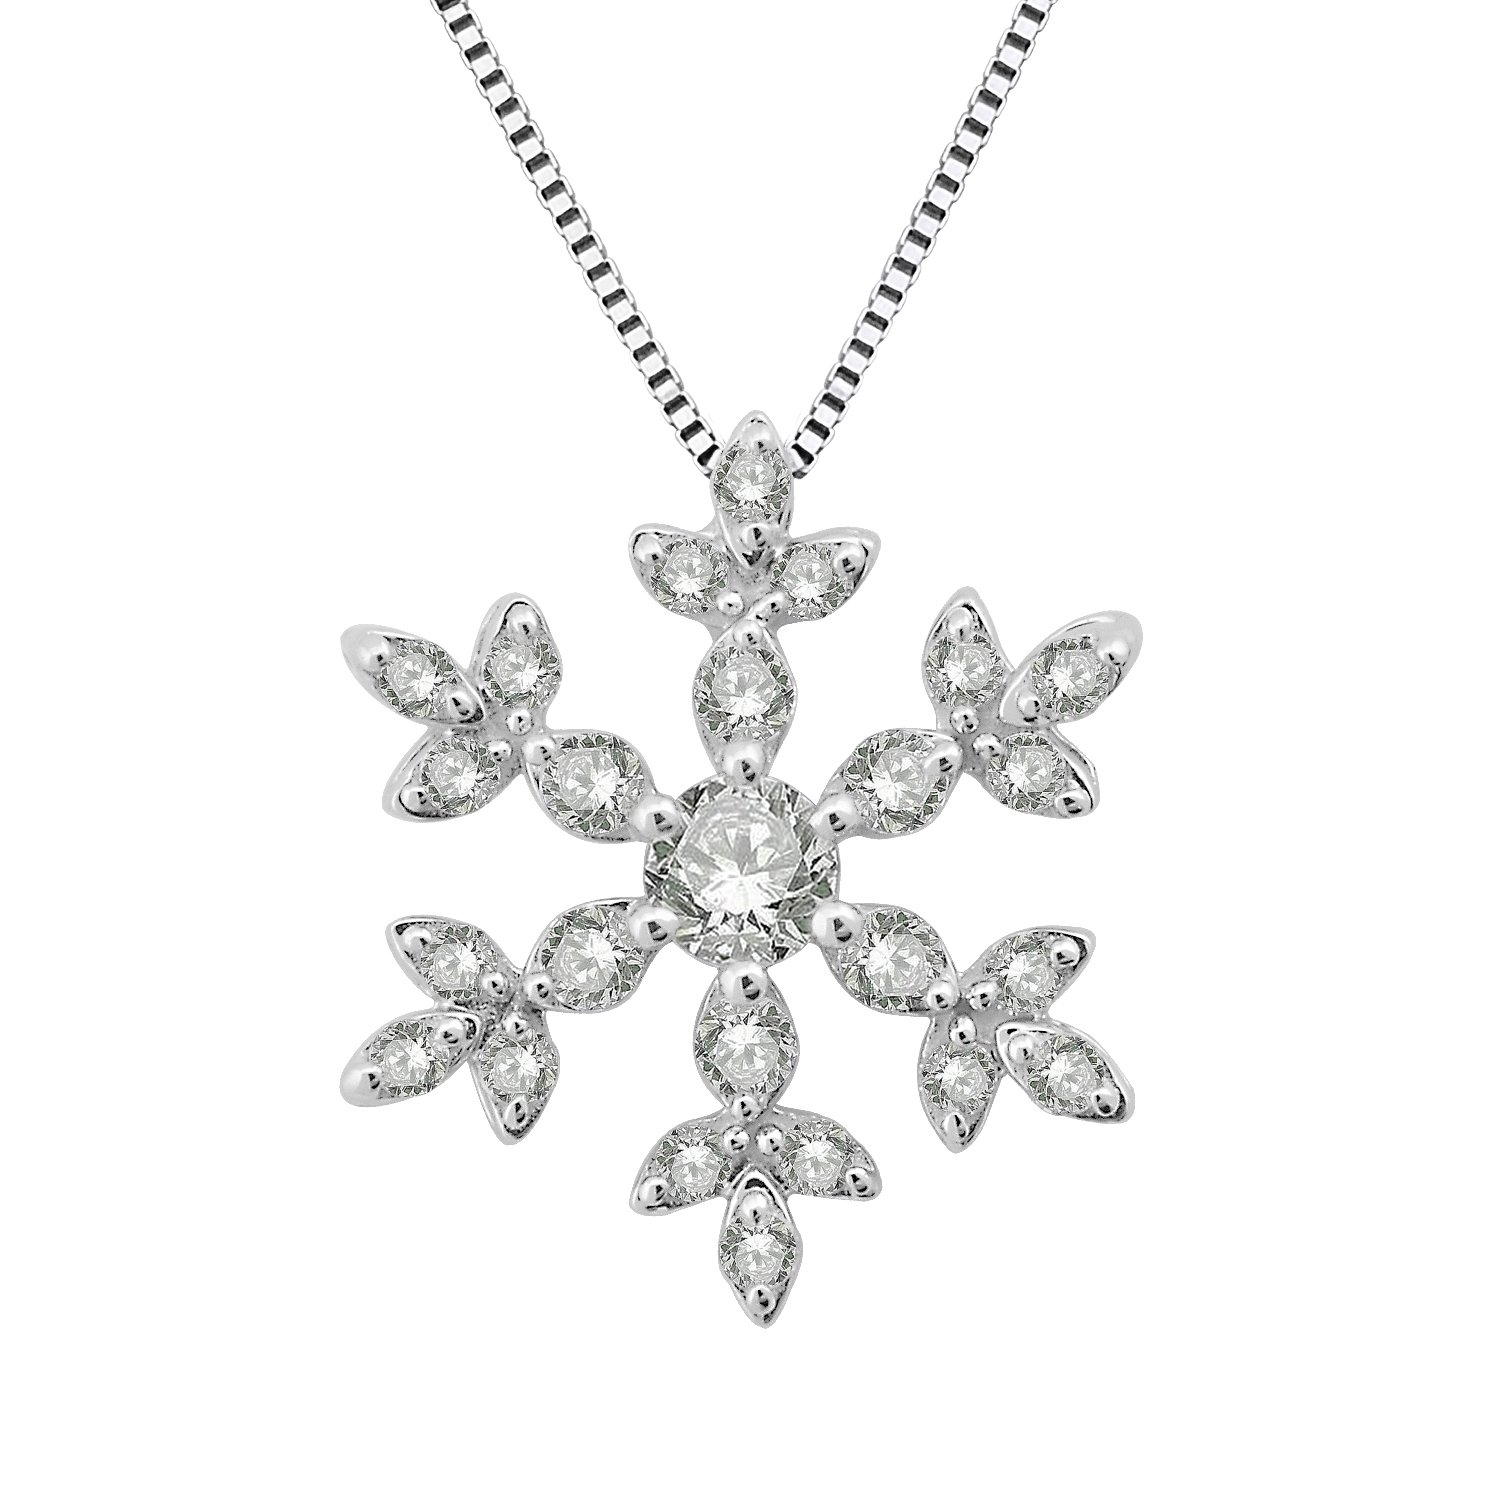 chlobo image the snowflake first necklaces necklace jewellery silver sterling